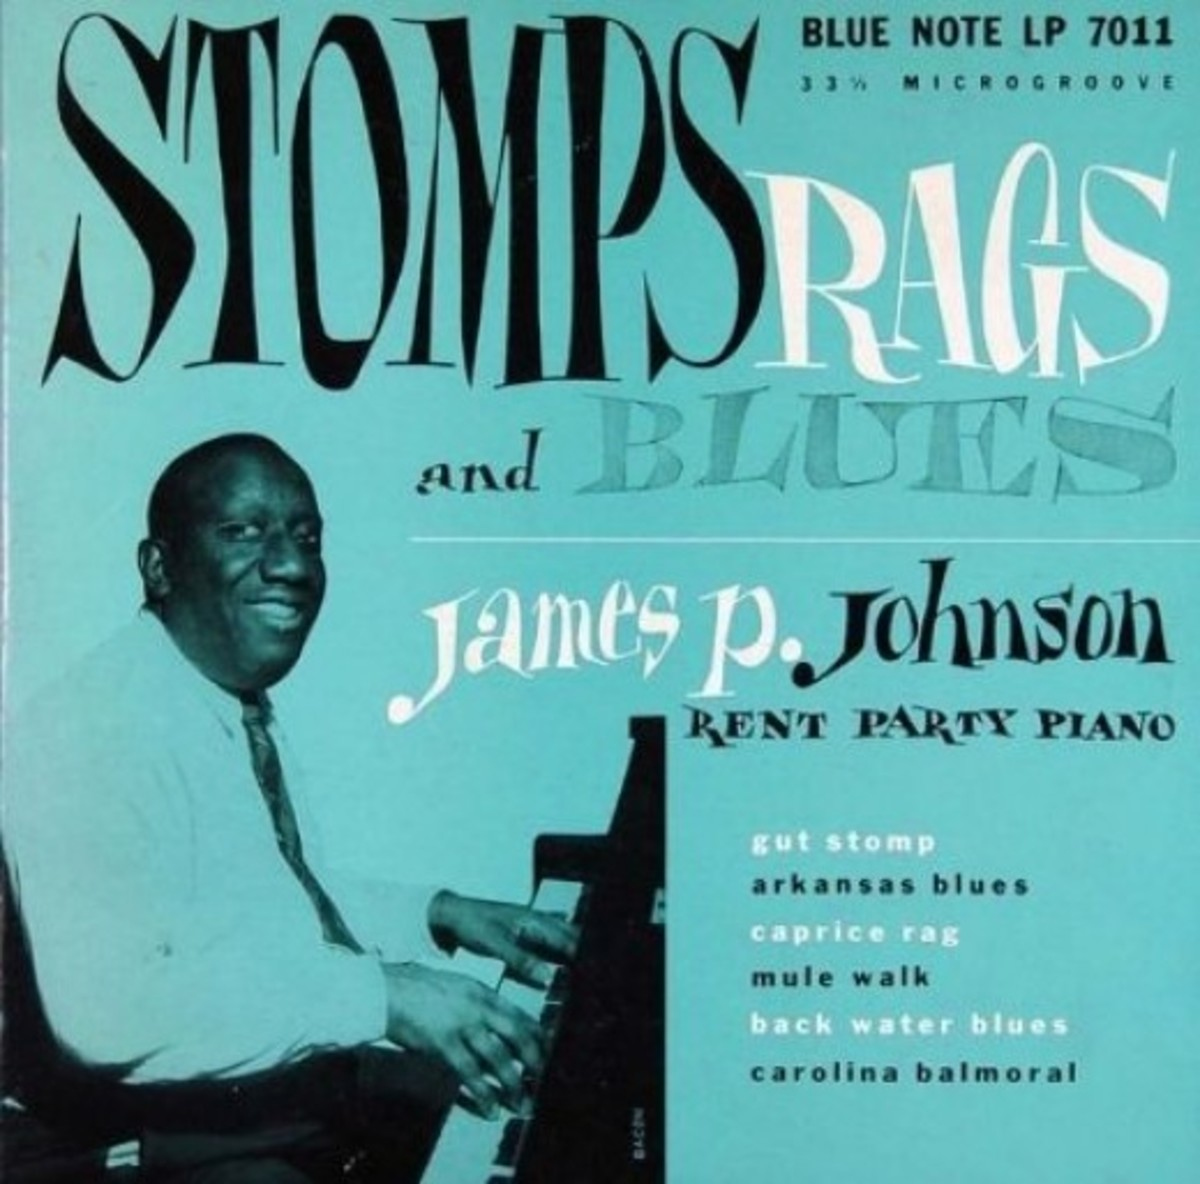 "James P Johnson ""Stomps Rags and Blues Rent Party Piano"" BLP 7011 10"" LP Vinyl Microgroove Record (1951) Album Cover Design by Paul Bacon Photo by Francis Wolff"